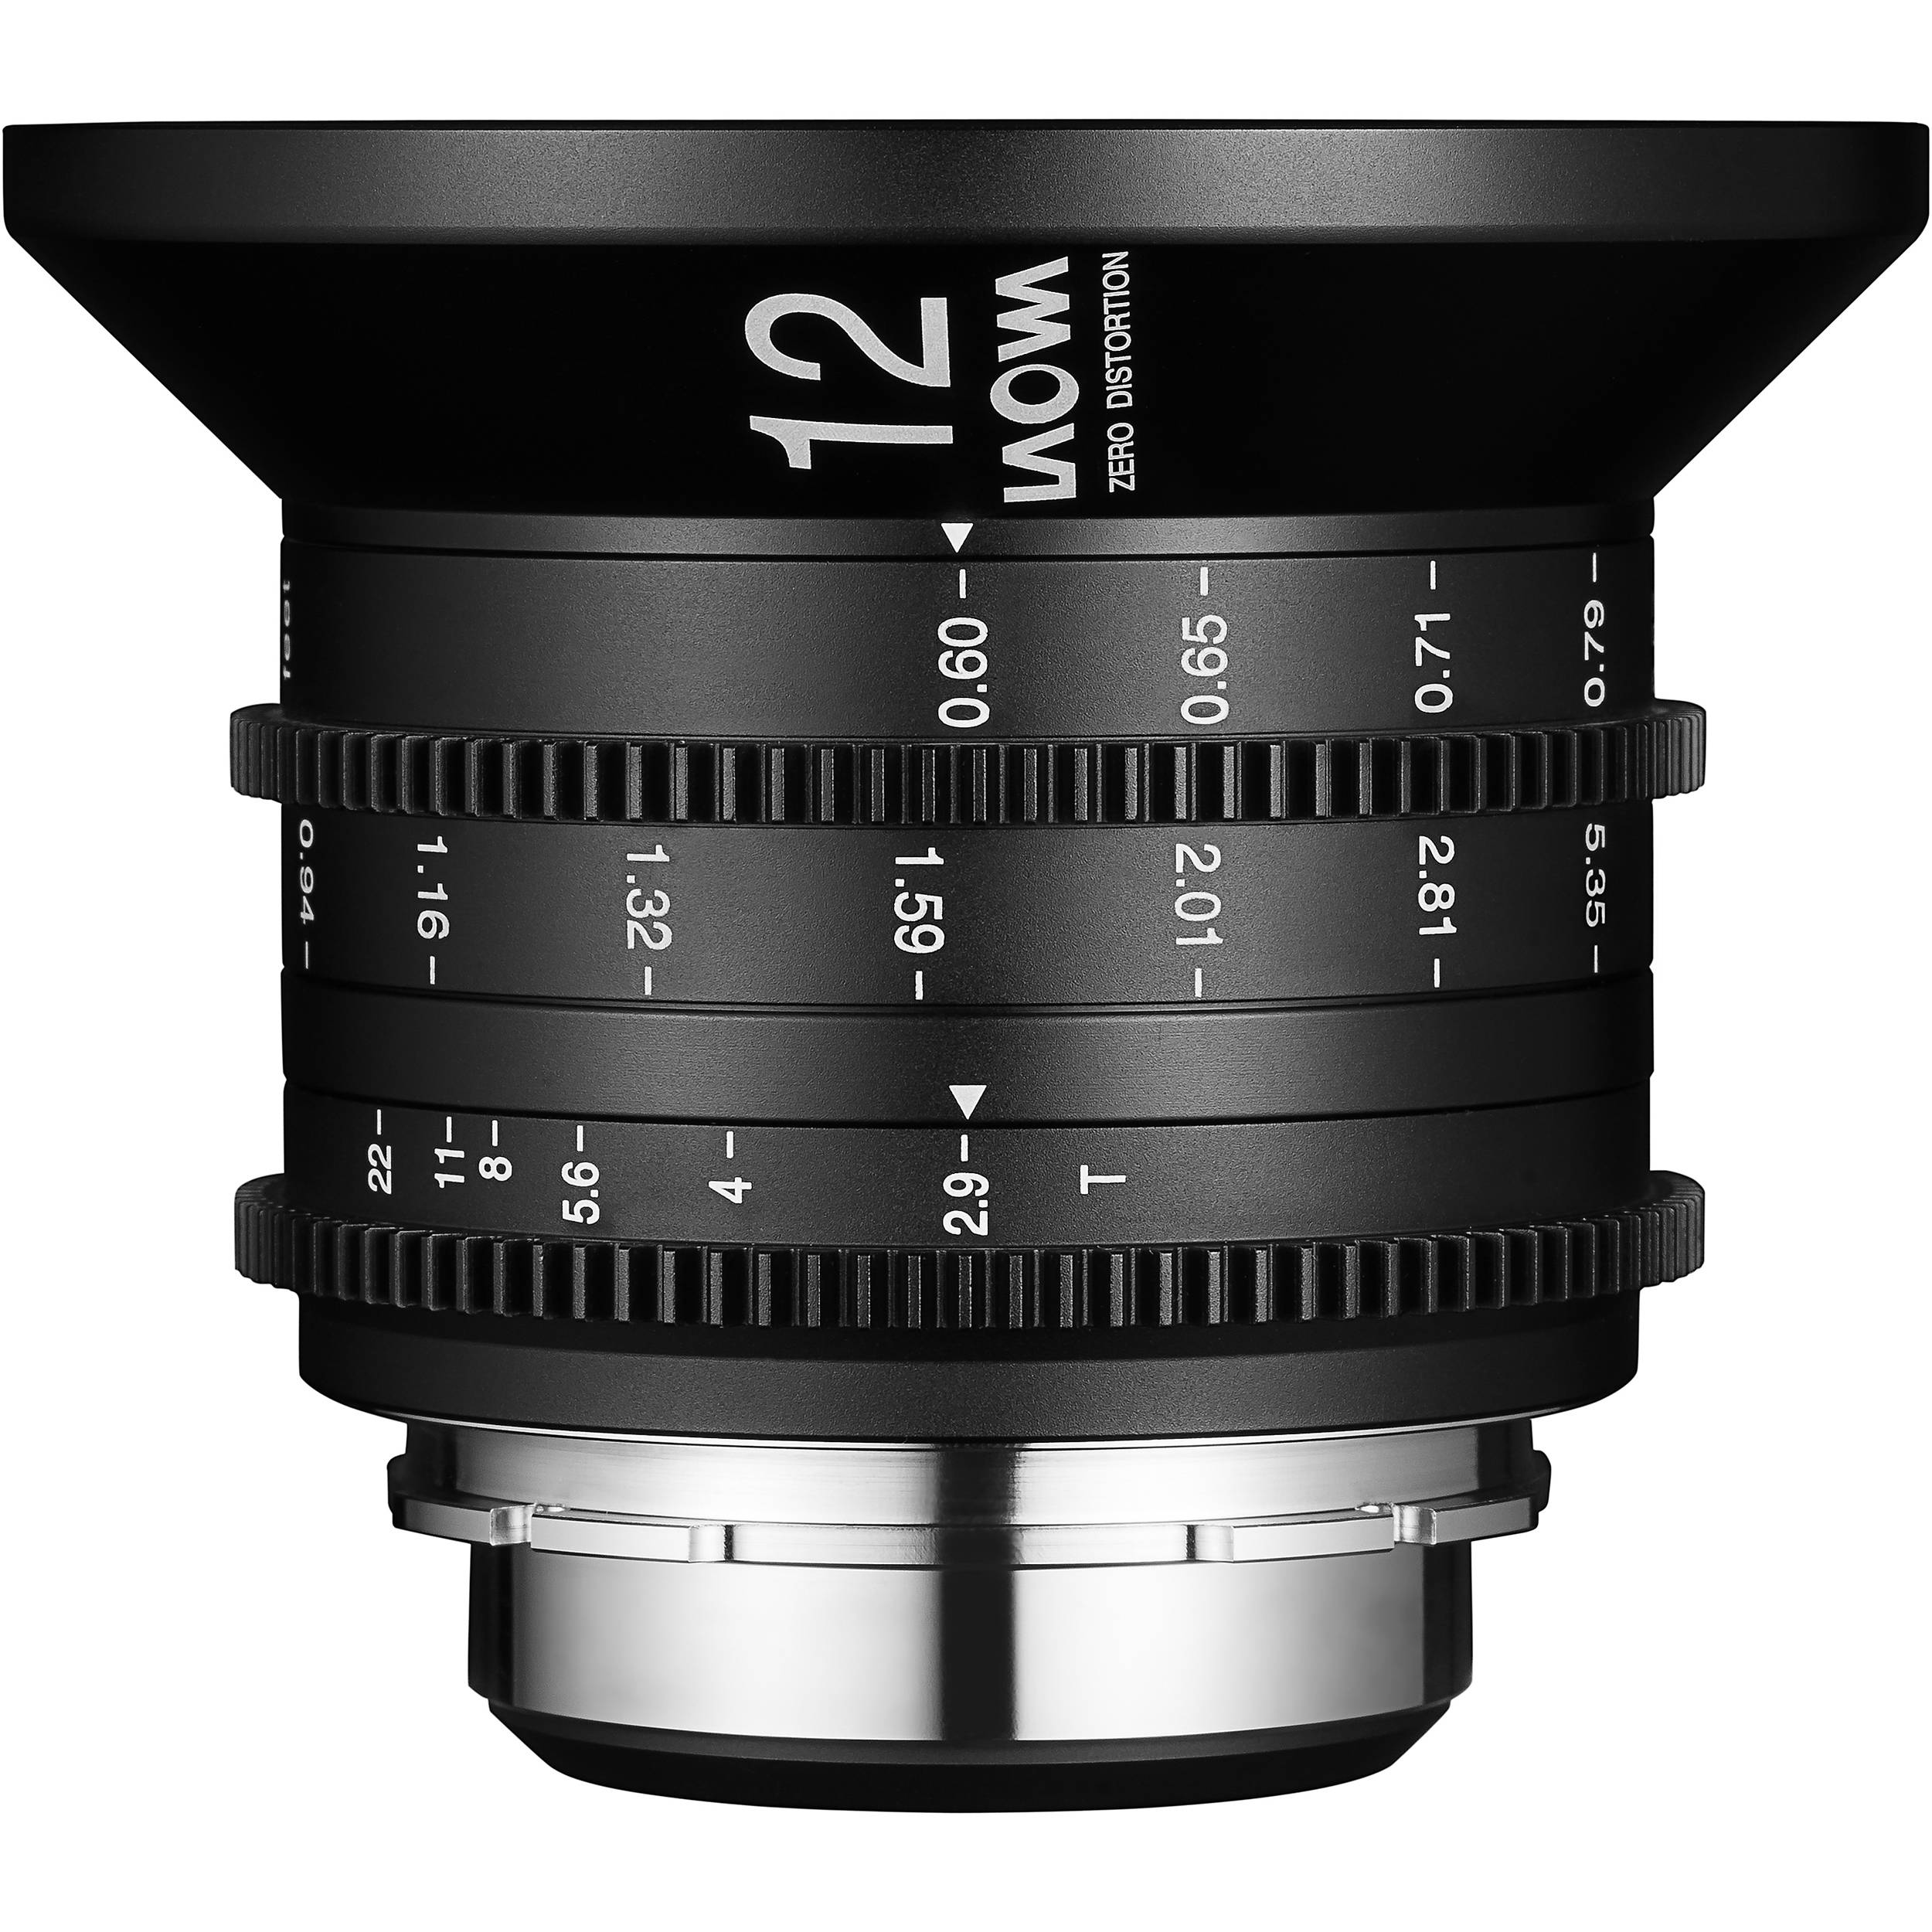 LAOWA 12MM ZERO DISTORTION T 2.9